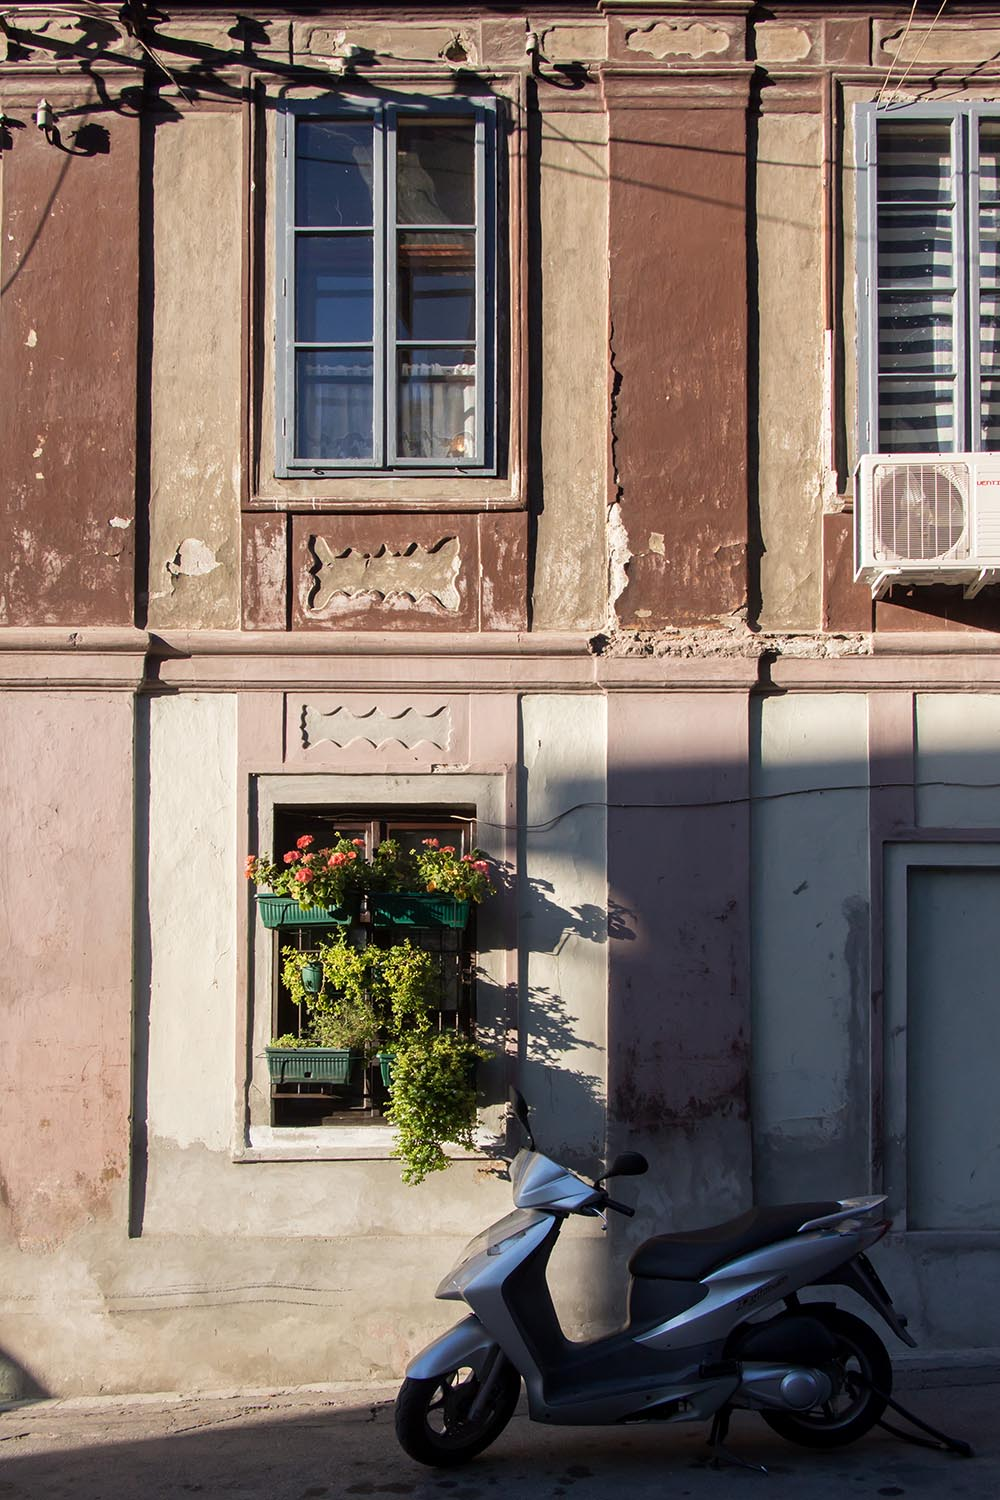 Old building facade and motorbike